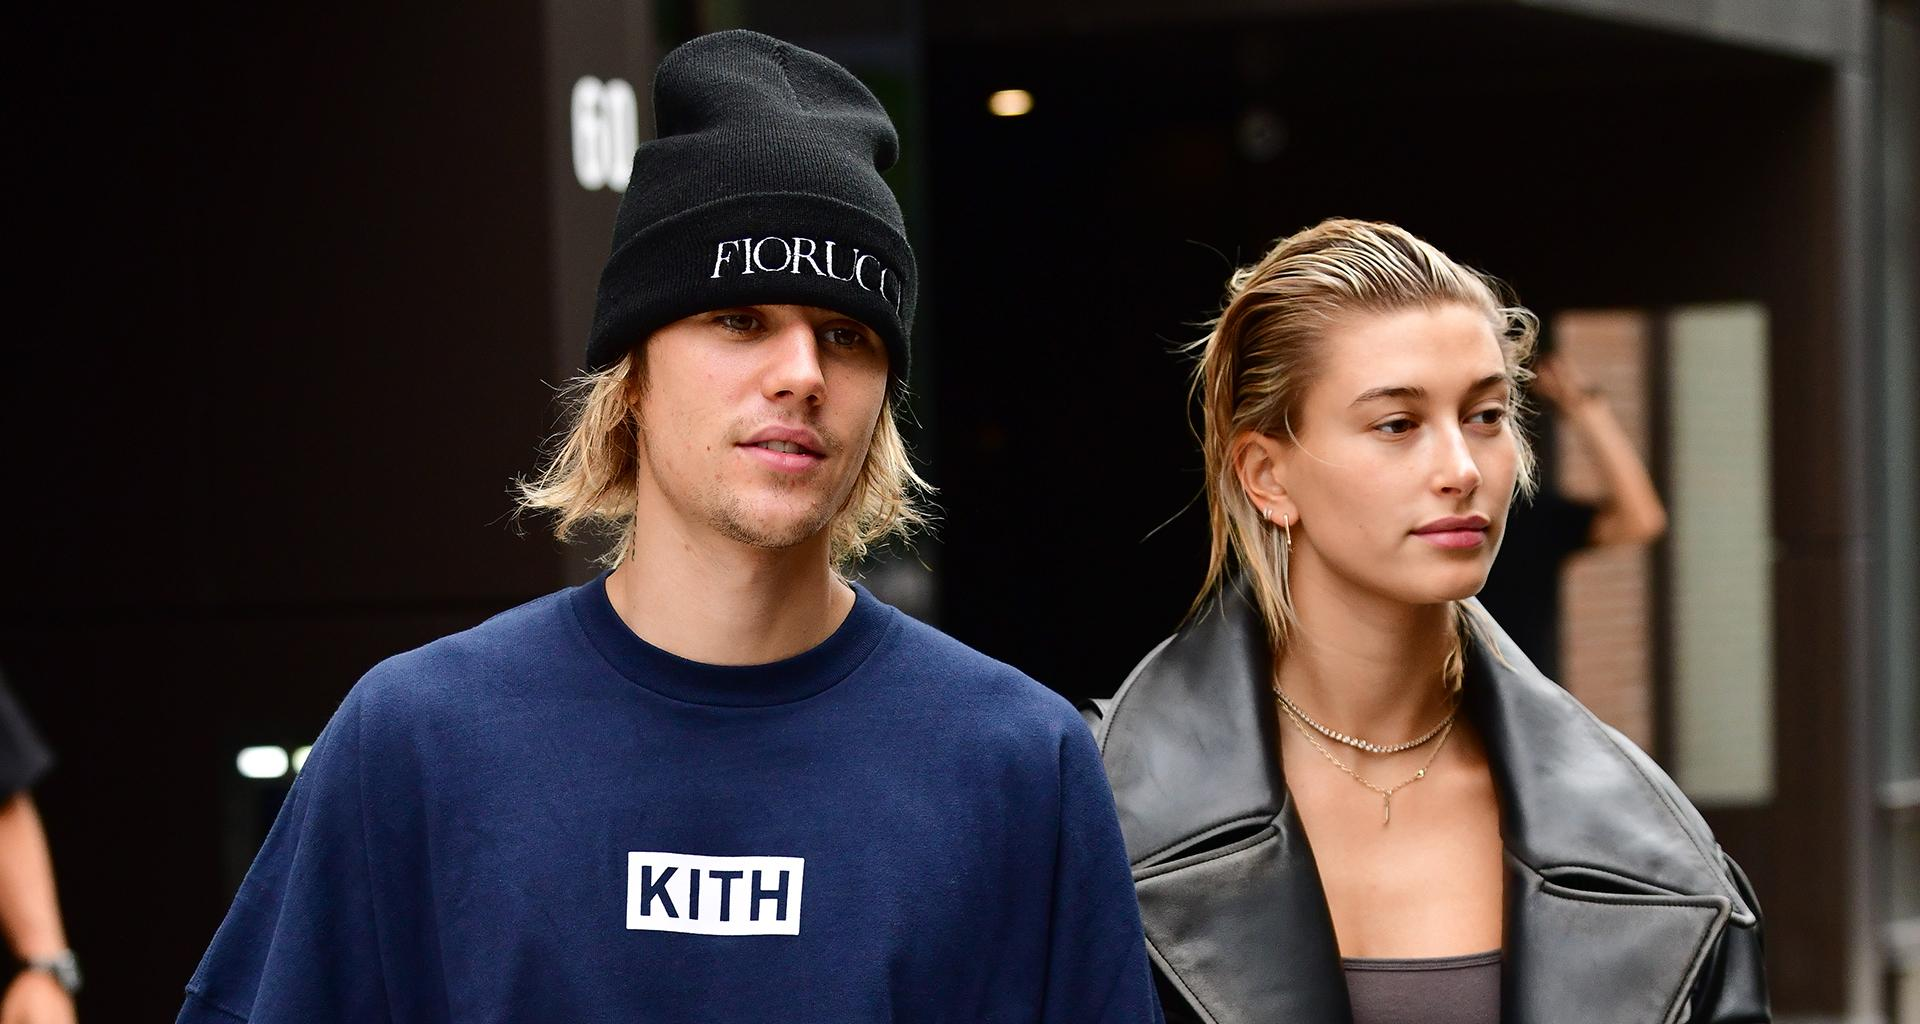 Justin And Hailey Bieber Appear To Get Into Argument At Public Park